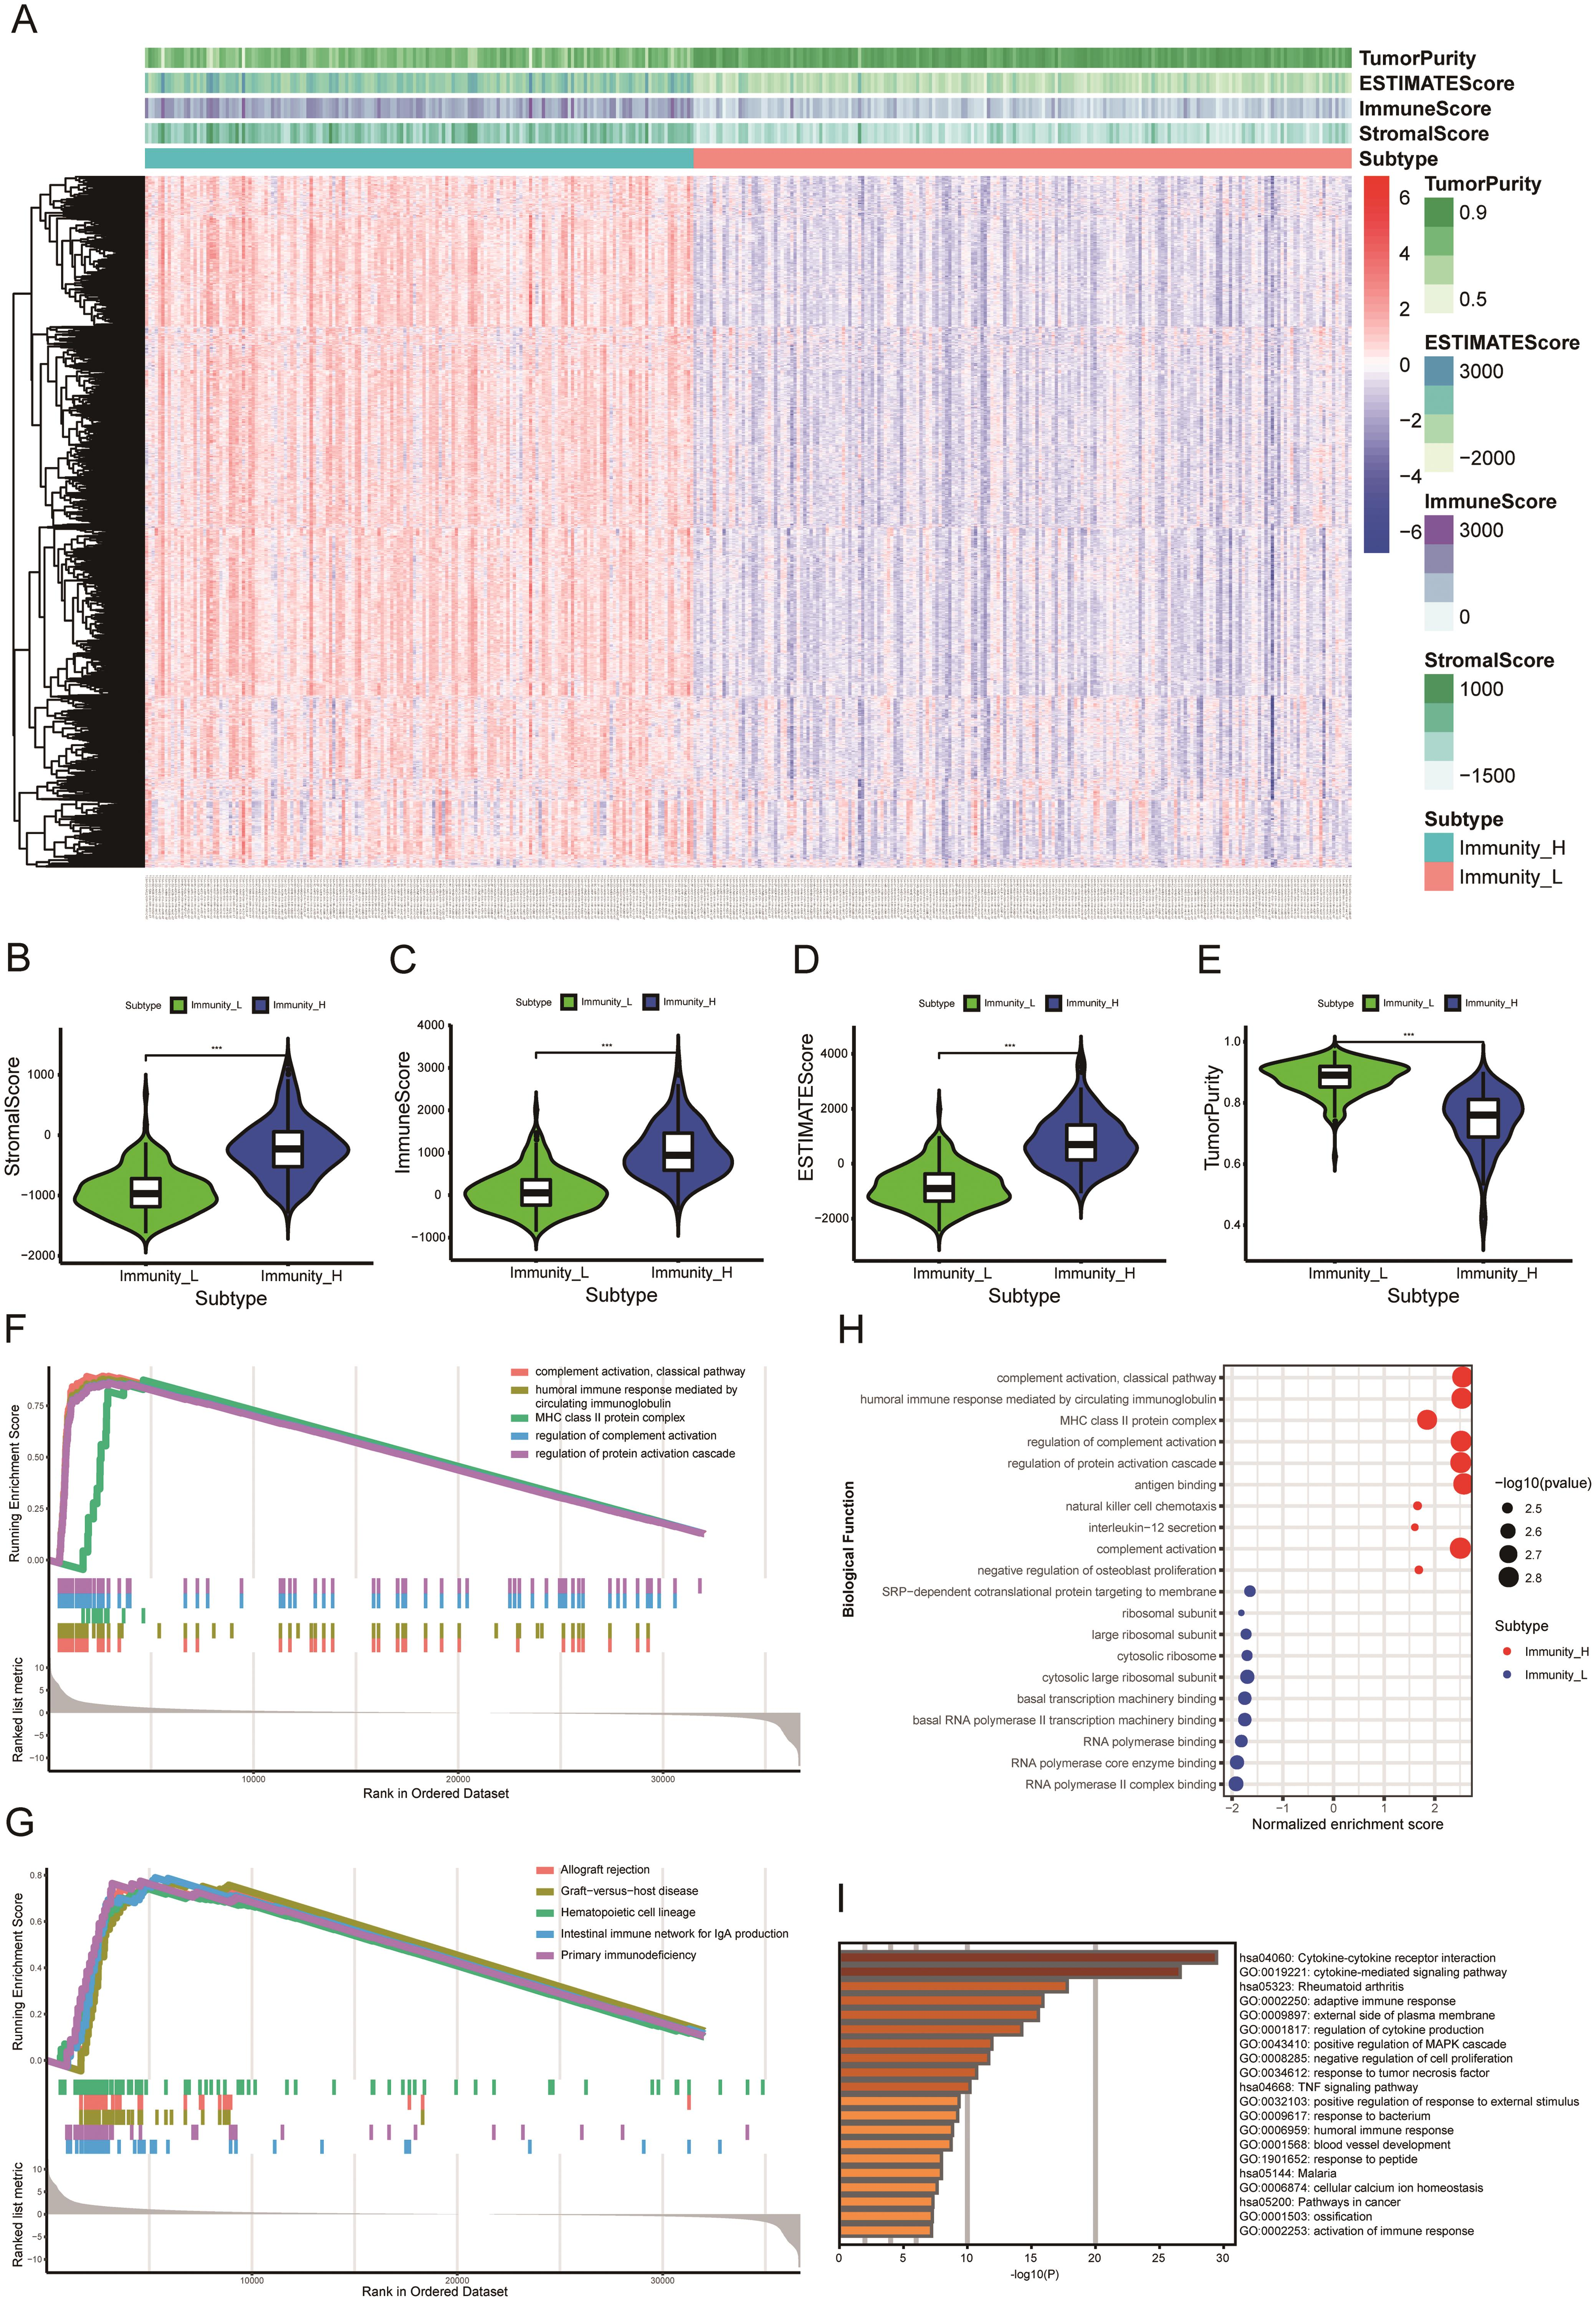 Microenvironment signatures of TCGA-LIHC cohort and enrichment analysis.